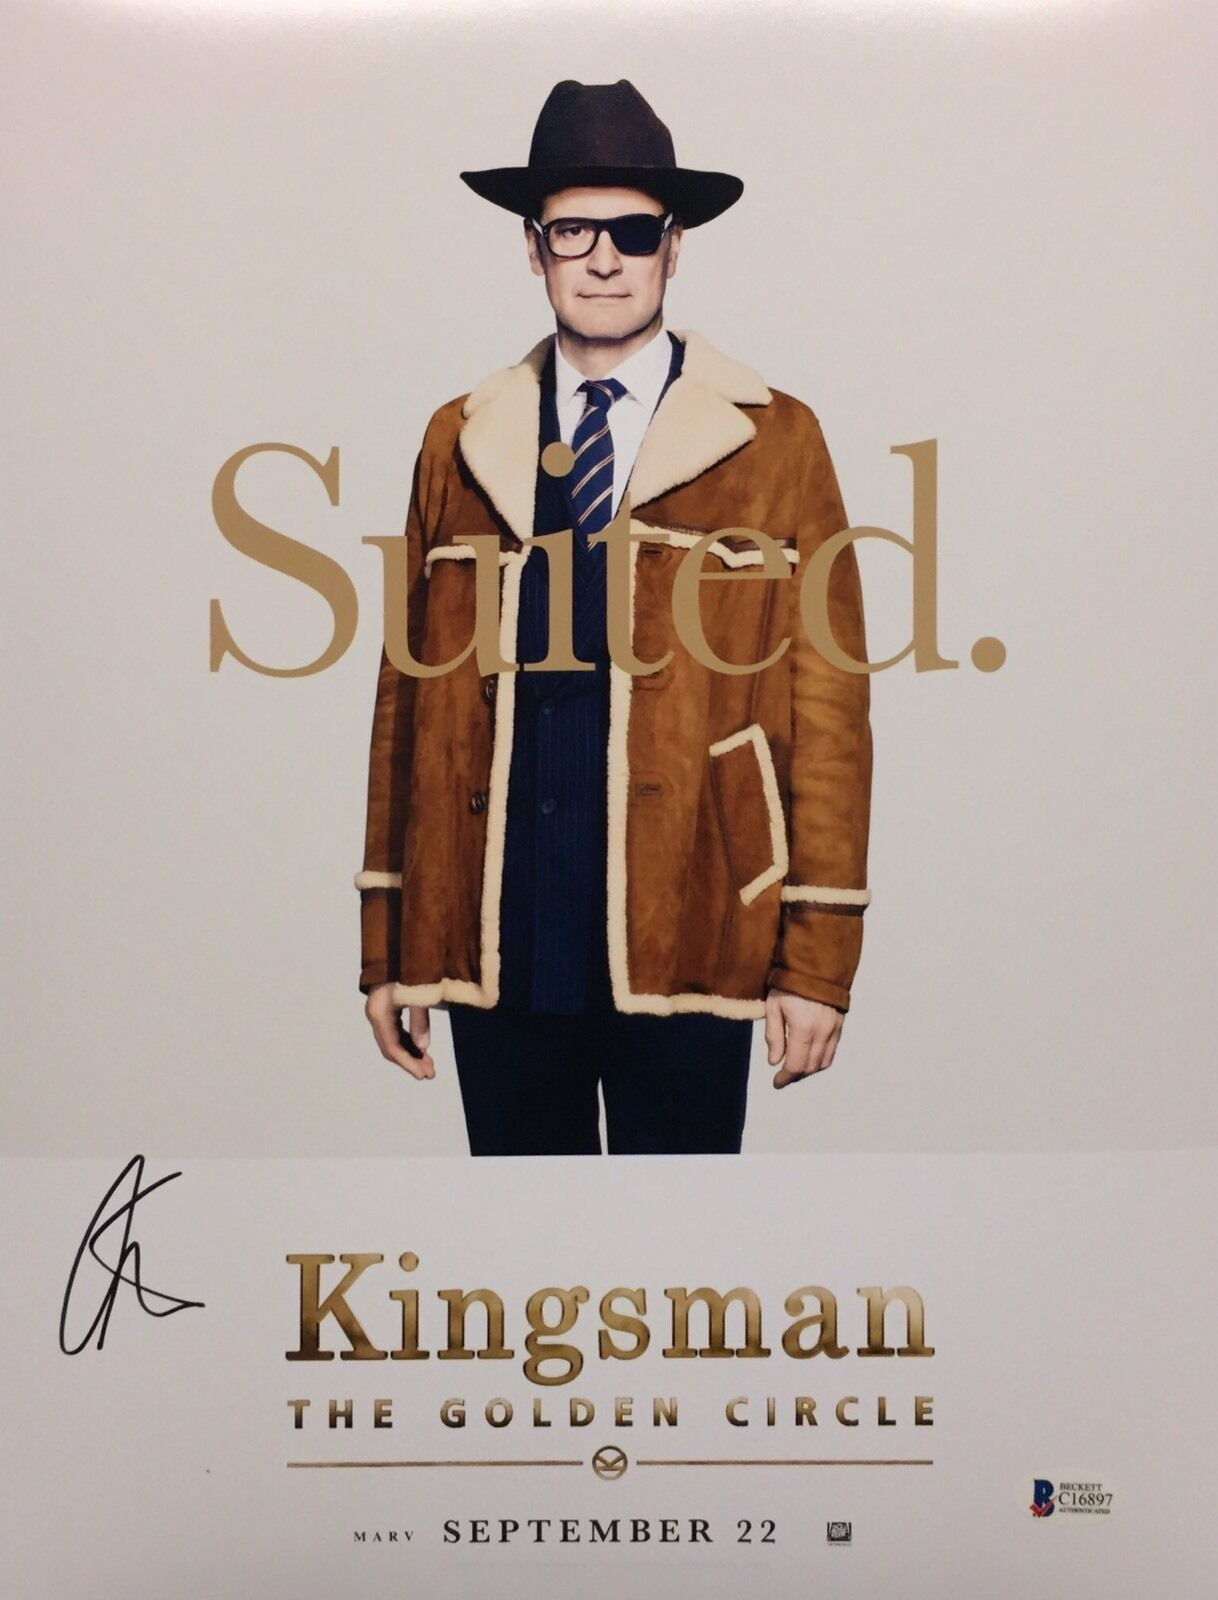 Colin Firth Signed Kingsman The Golden Circle 11x14 Photo BAS Beckett C16897